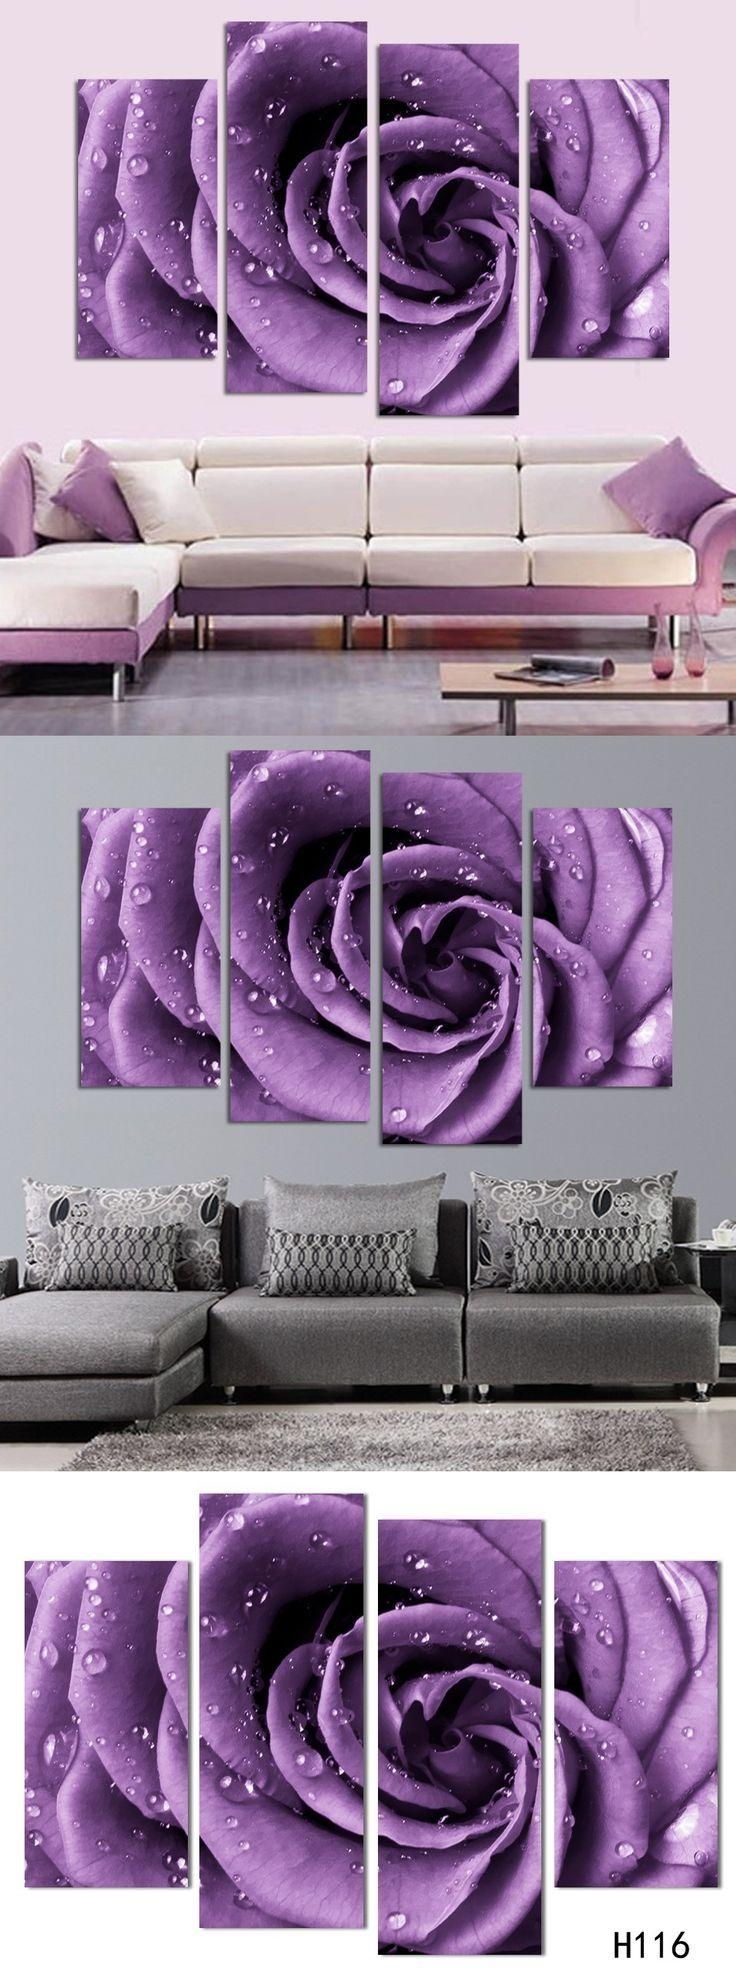 Best 25+ 3 Piece Wall Art Ideas On Pinterest | 3 Piece Art, Diy With 3 Piece Floral Canvas Wall Art (View 13 of 20)